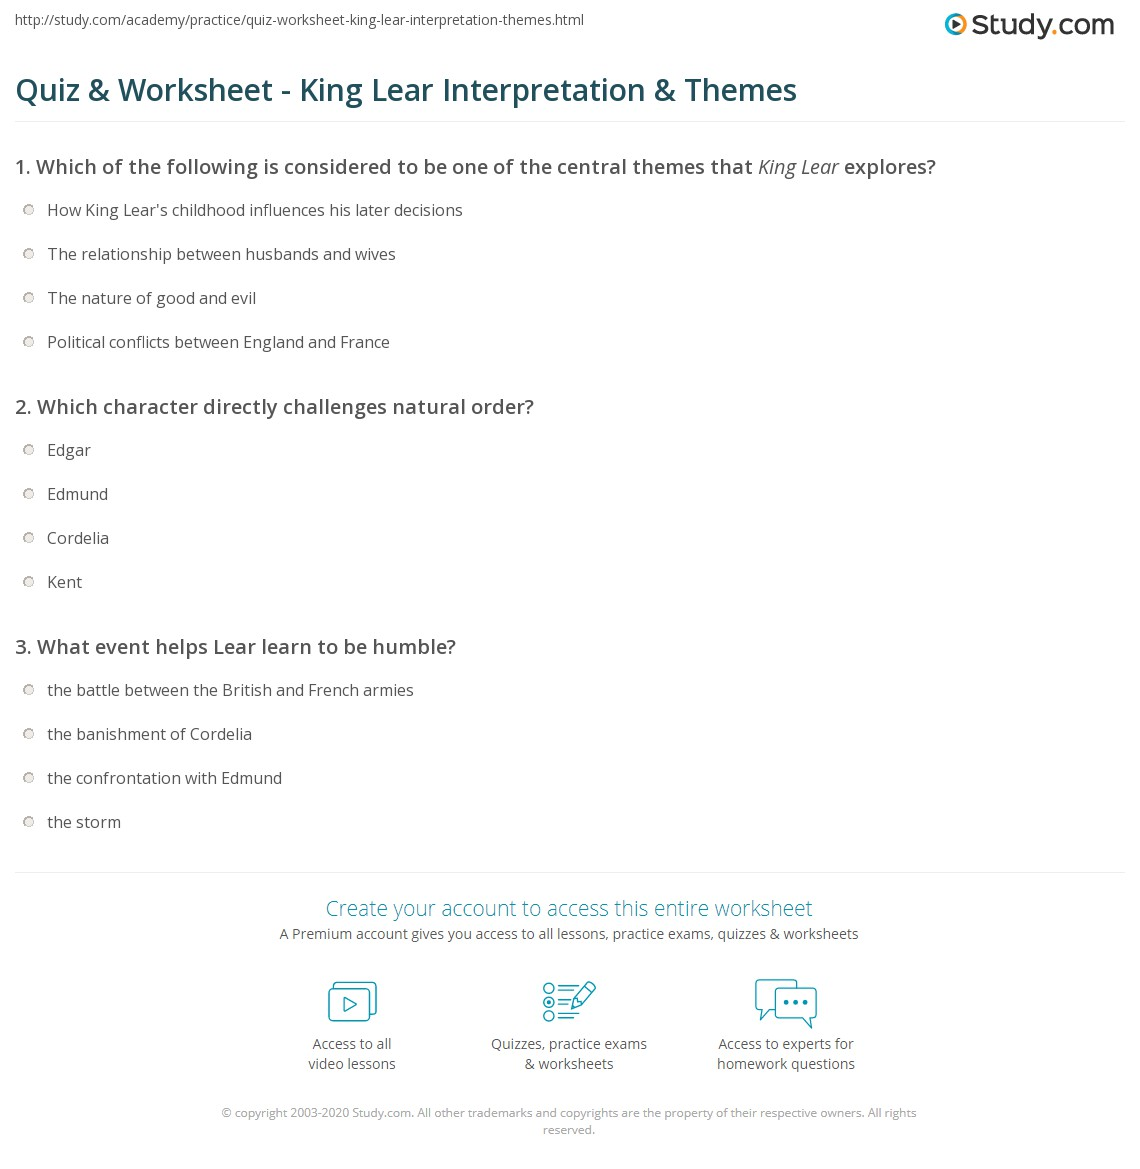 quiz worksheet king lear interpretation themes com print king lear themes analysis worksheet